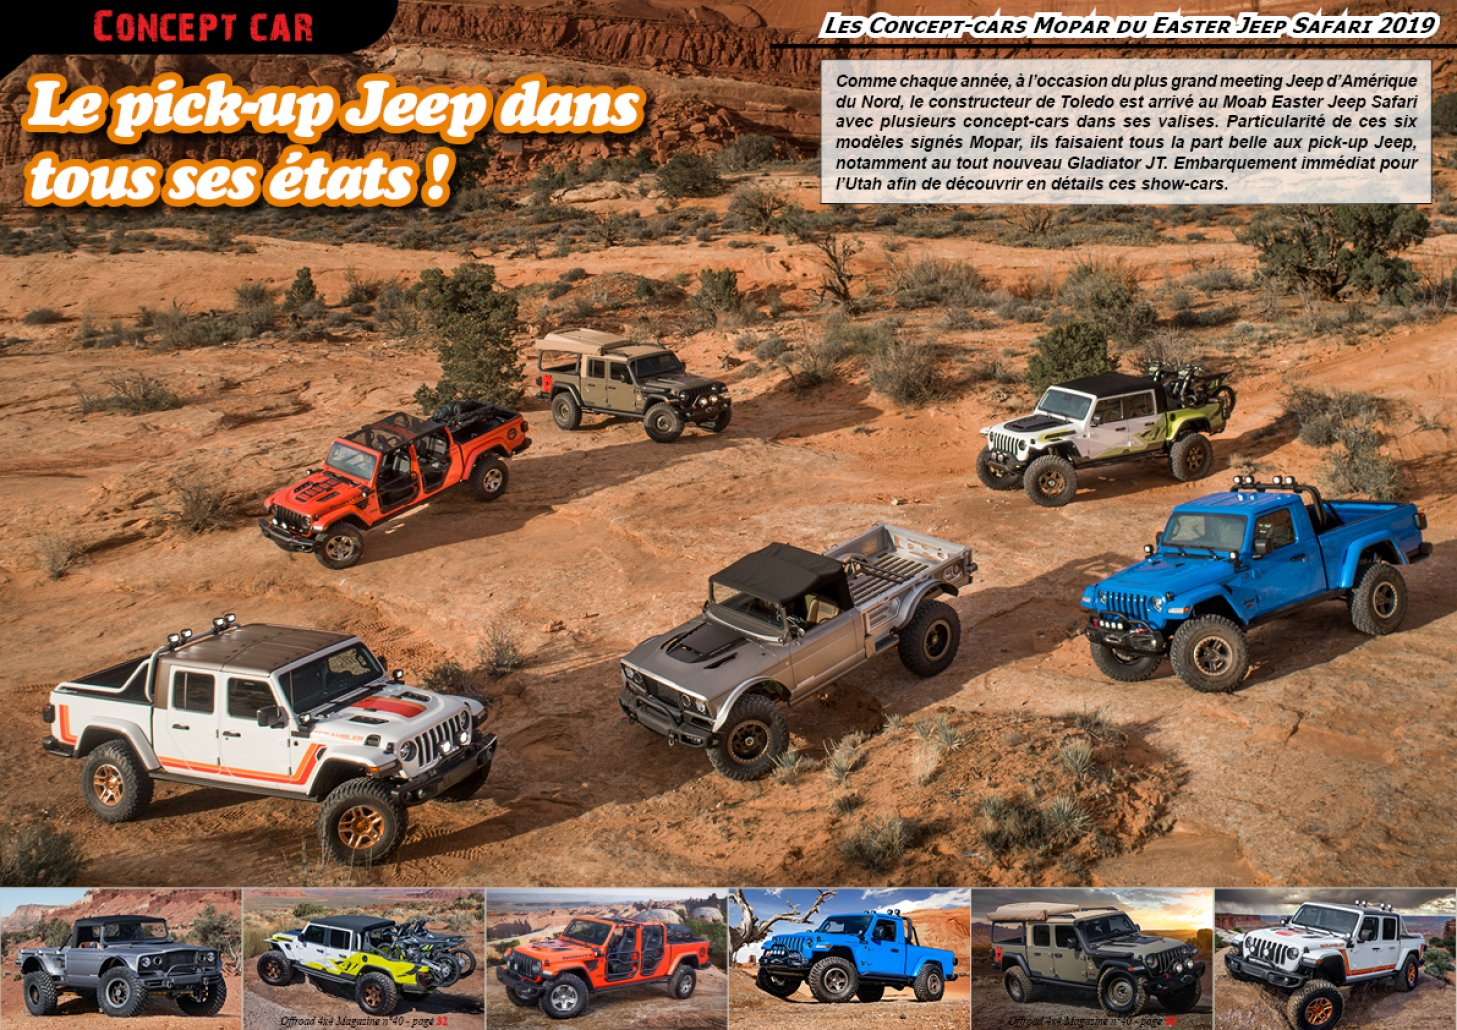 Les Jeep Mopar du Easter Safari 2019